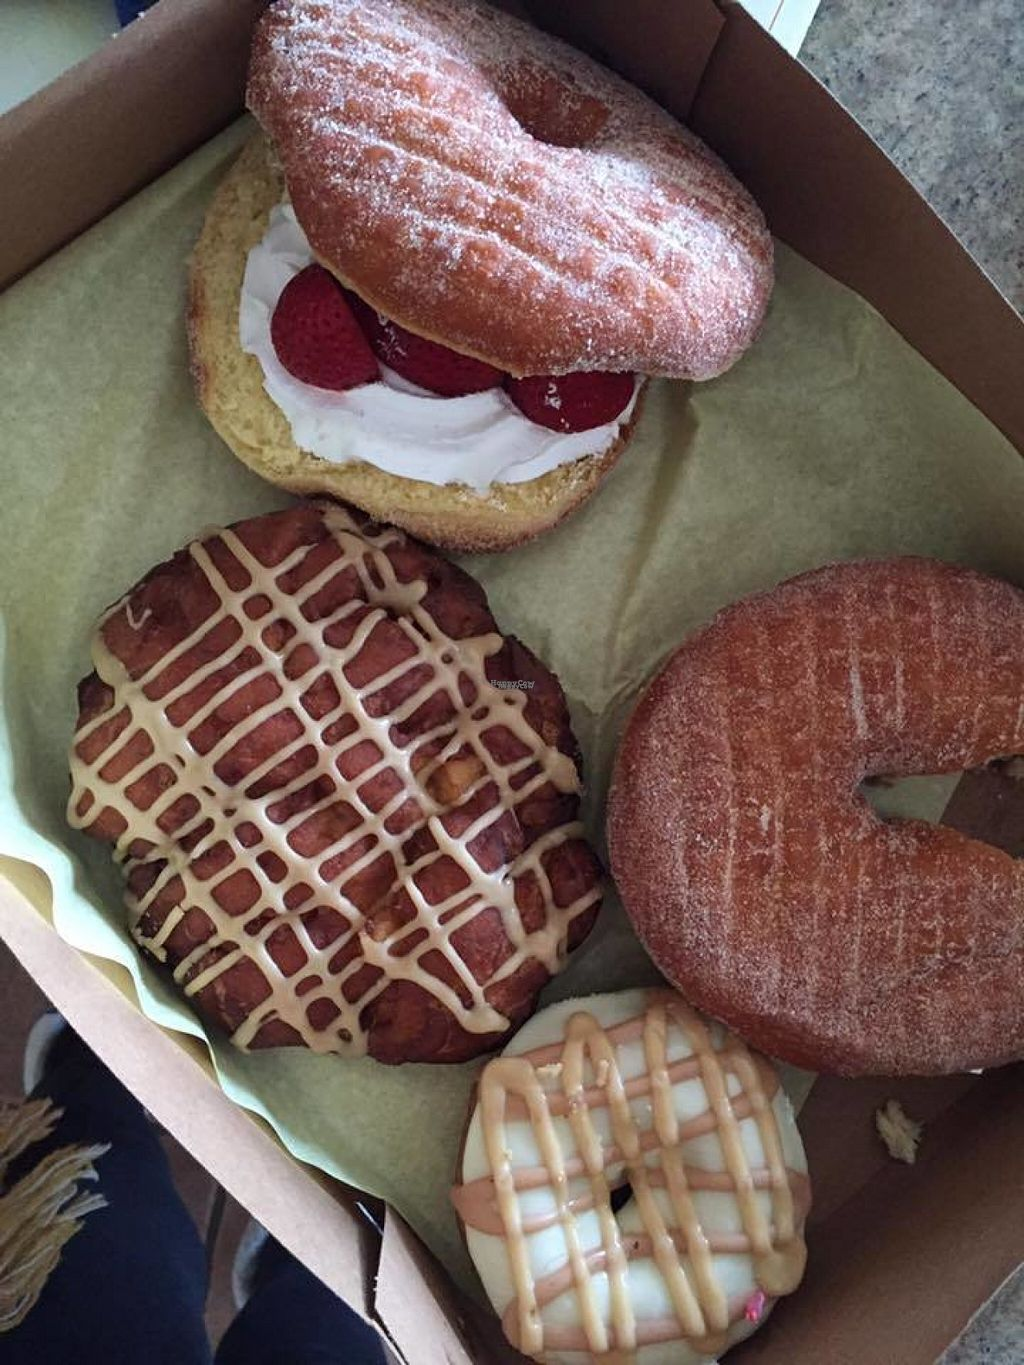 """Photo of Donut Bar  by <a href=""""/members/profile/JessicaMerced"""">JessicaMerced</a> <br/>Vegan Donuts, best I've ever had <br/> August 10, 2016  - <a href='/contact/abuse/image/57006/167558'>Report</a>"""